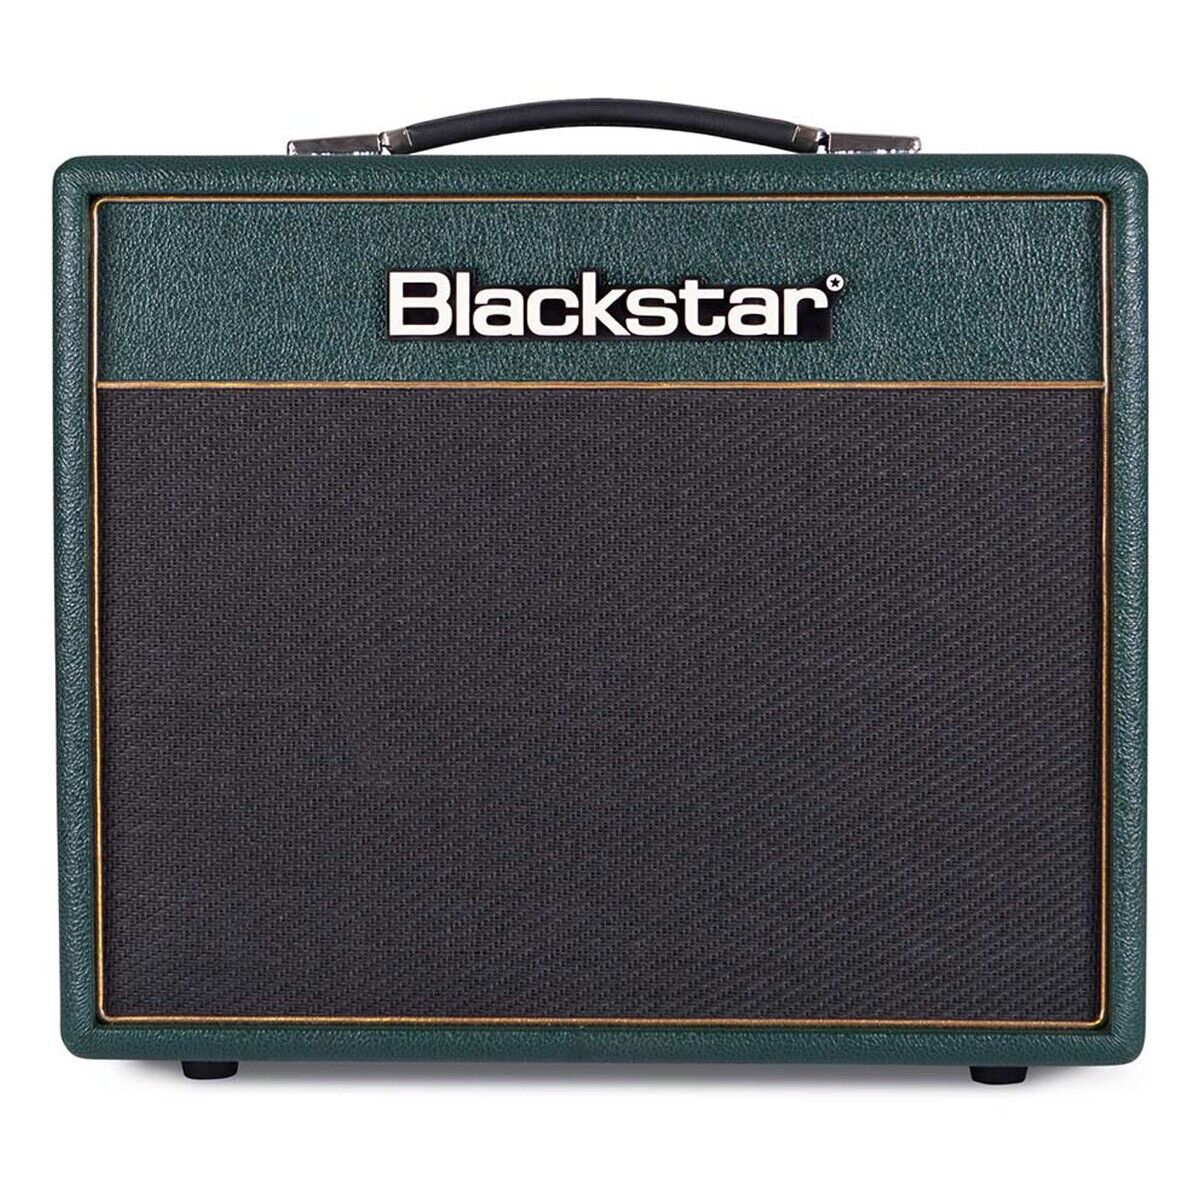 Blackstar STUDIO 10 KT88 Combo Amp. Buy it now for 419.00